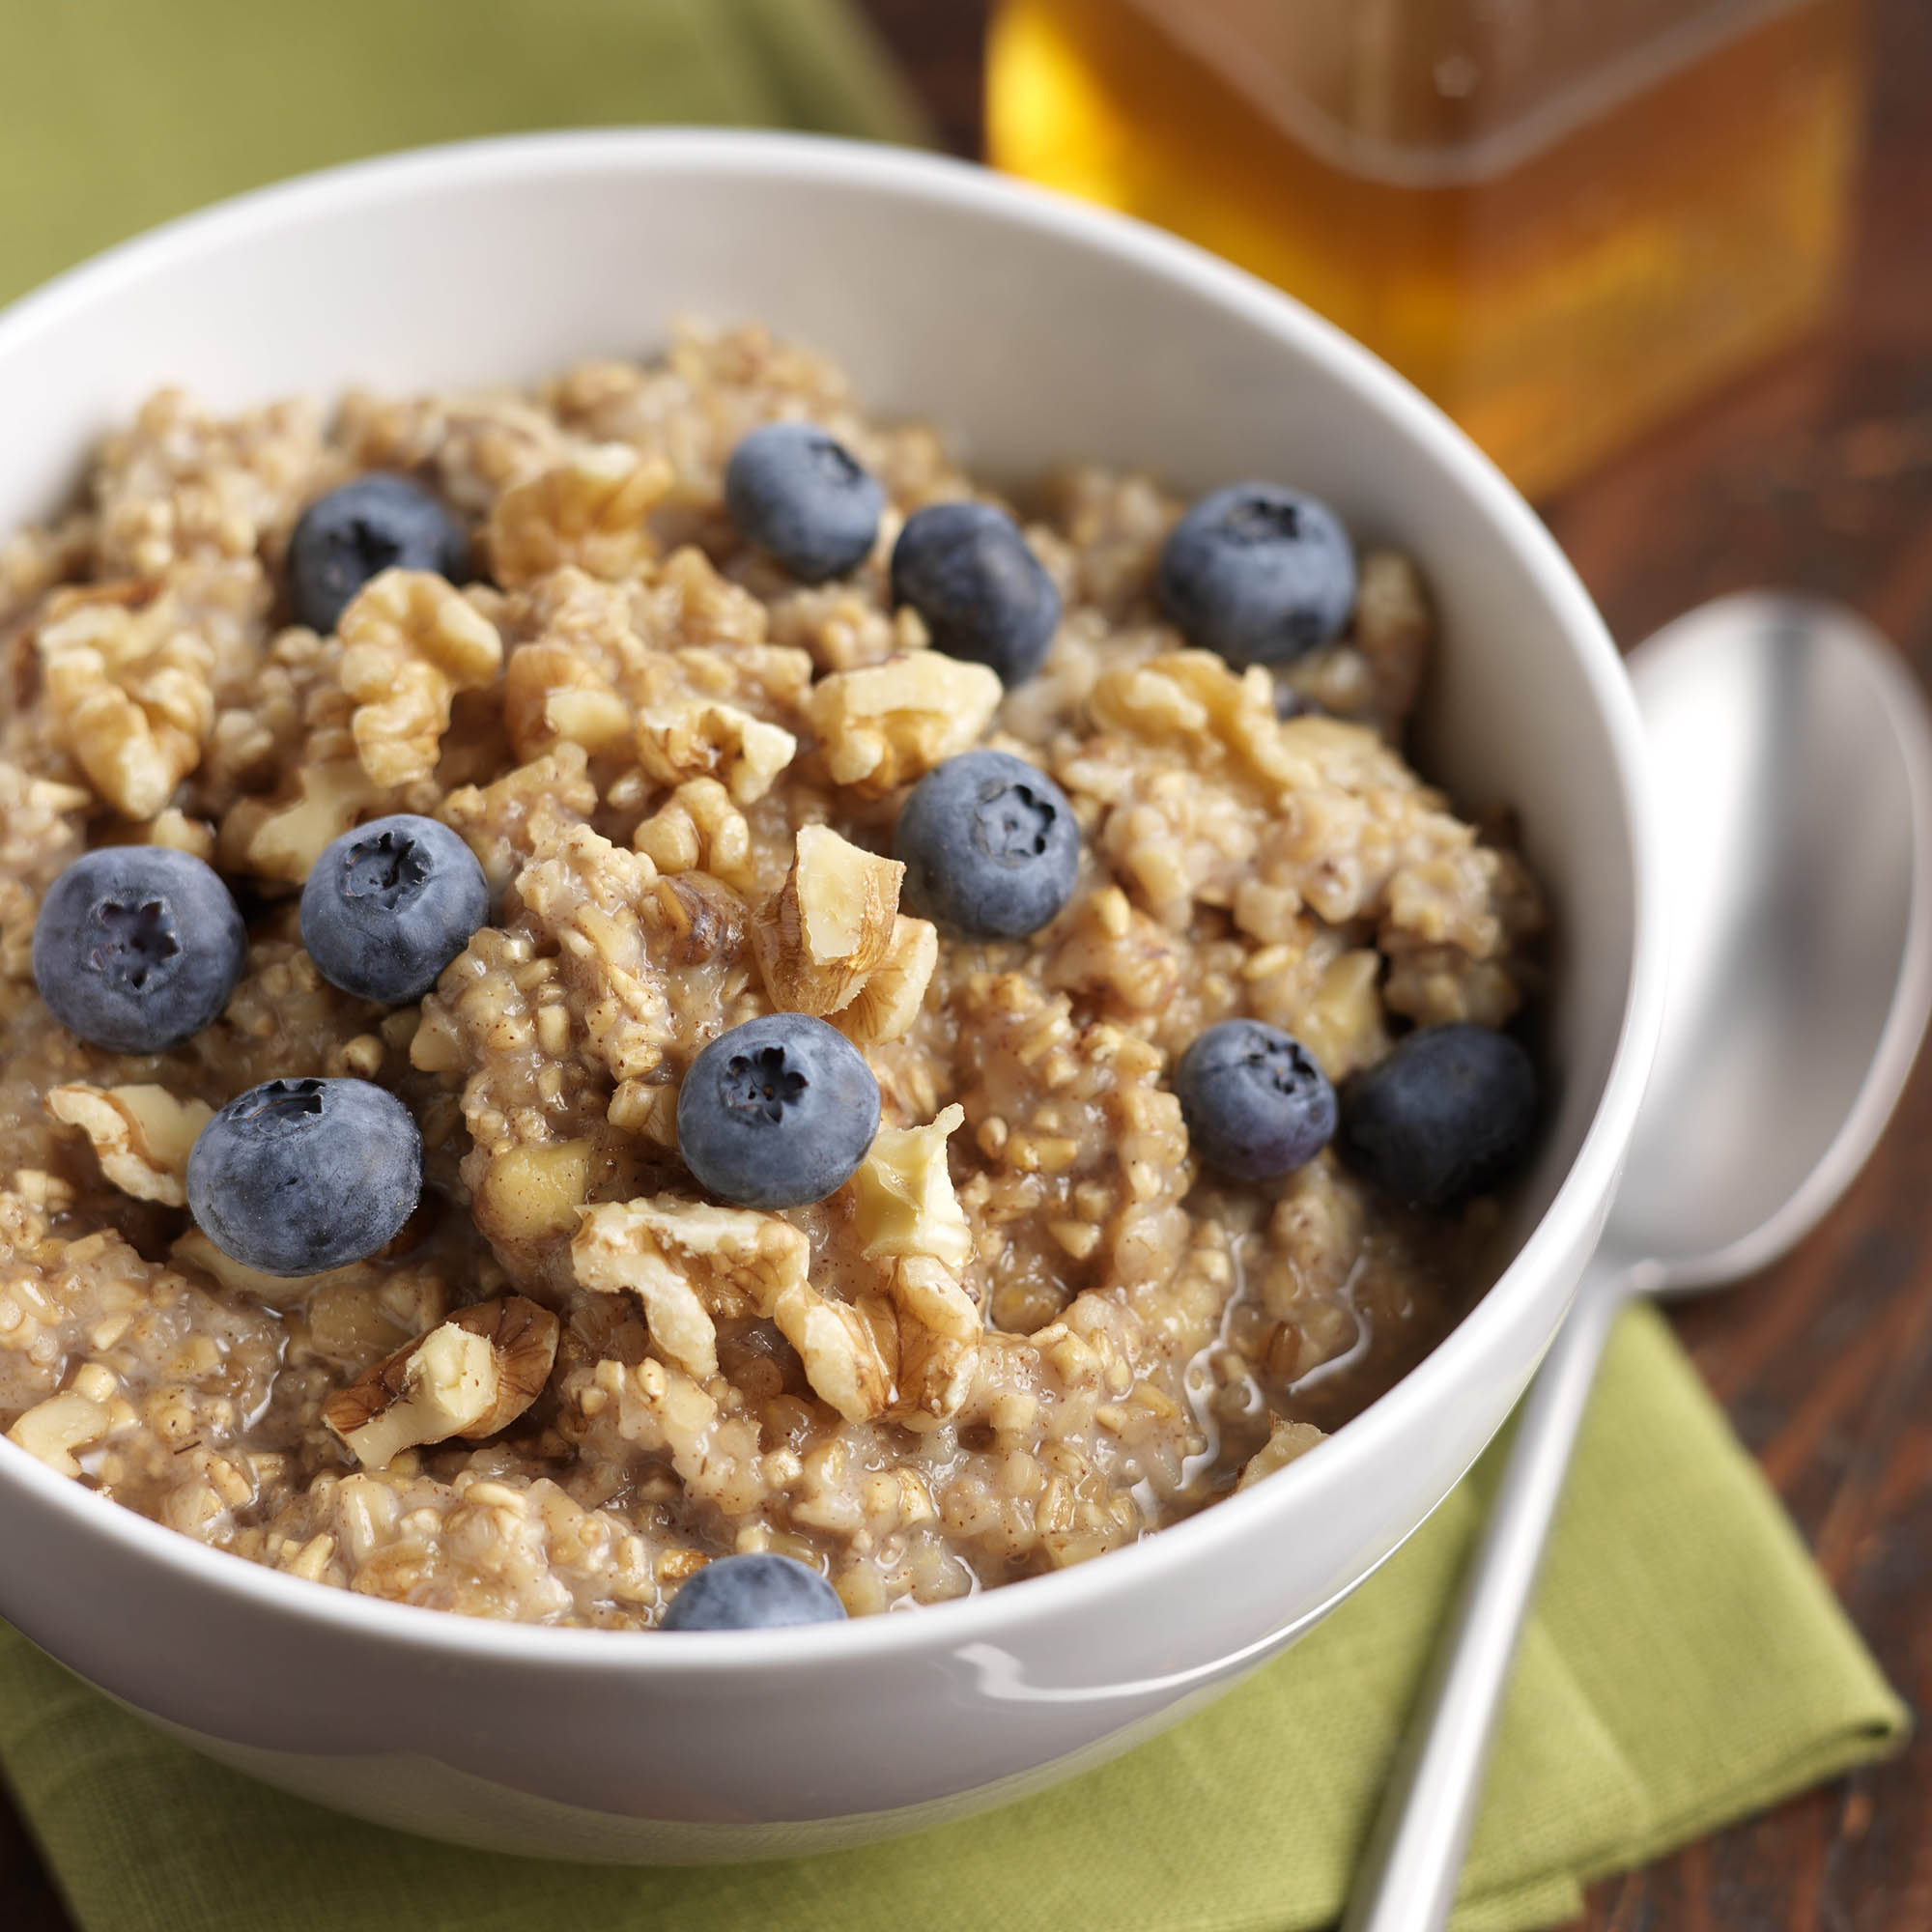 Blueberry Oatmeal With Cinnamon And Walnuts